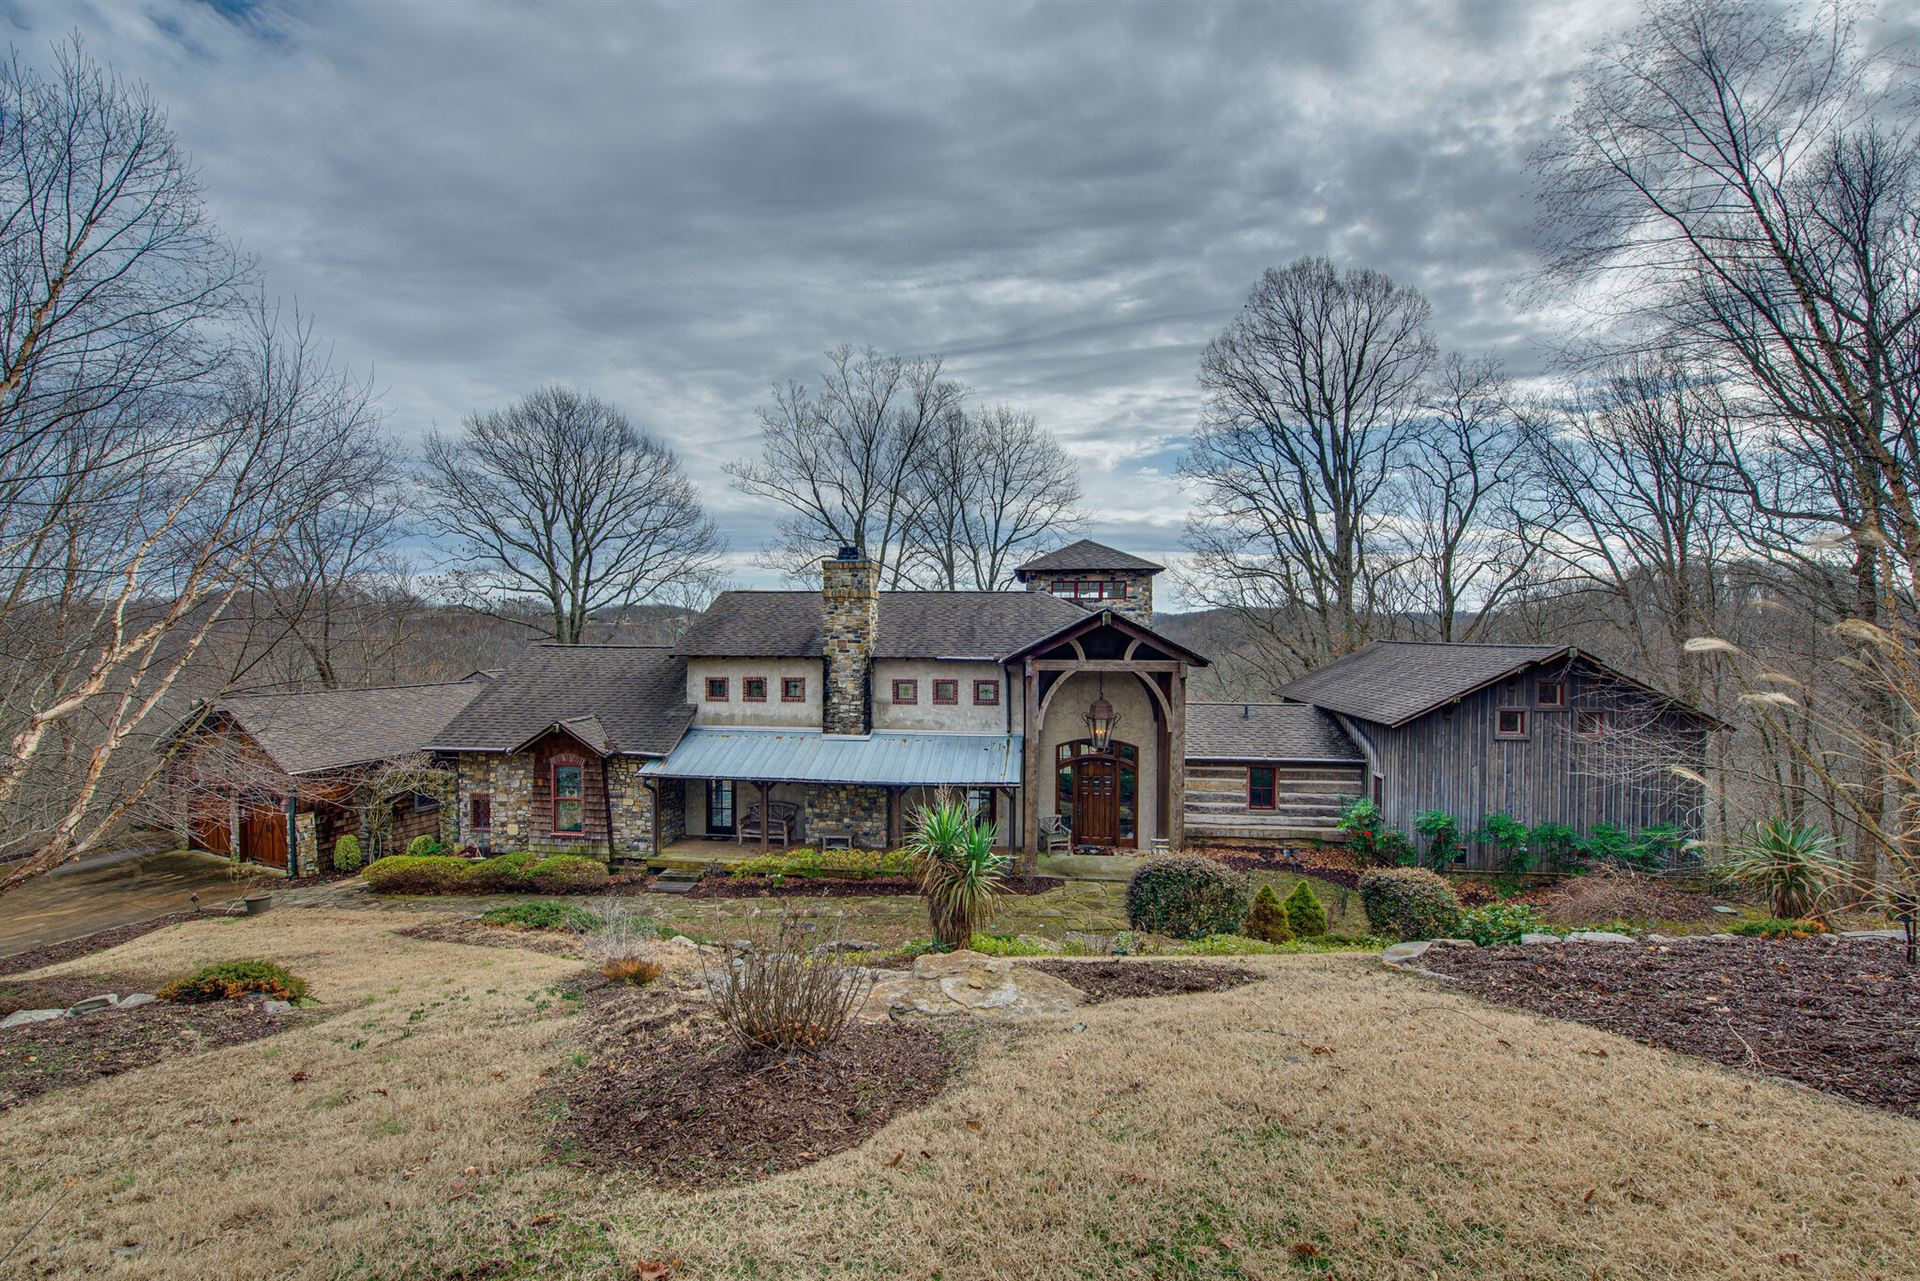 Photo of 1007A Highland Road, Brentwood, TN 37027 (MLS # 2224093)